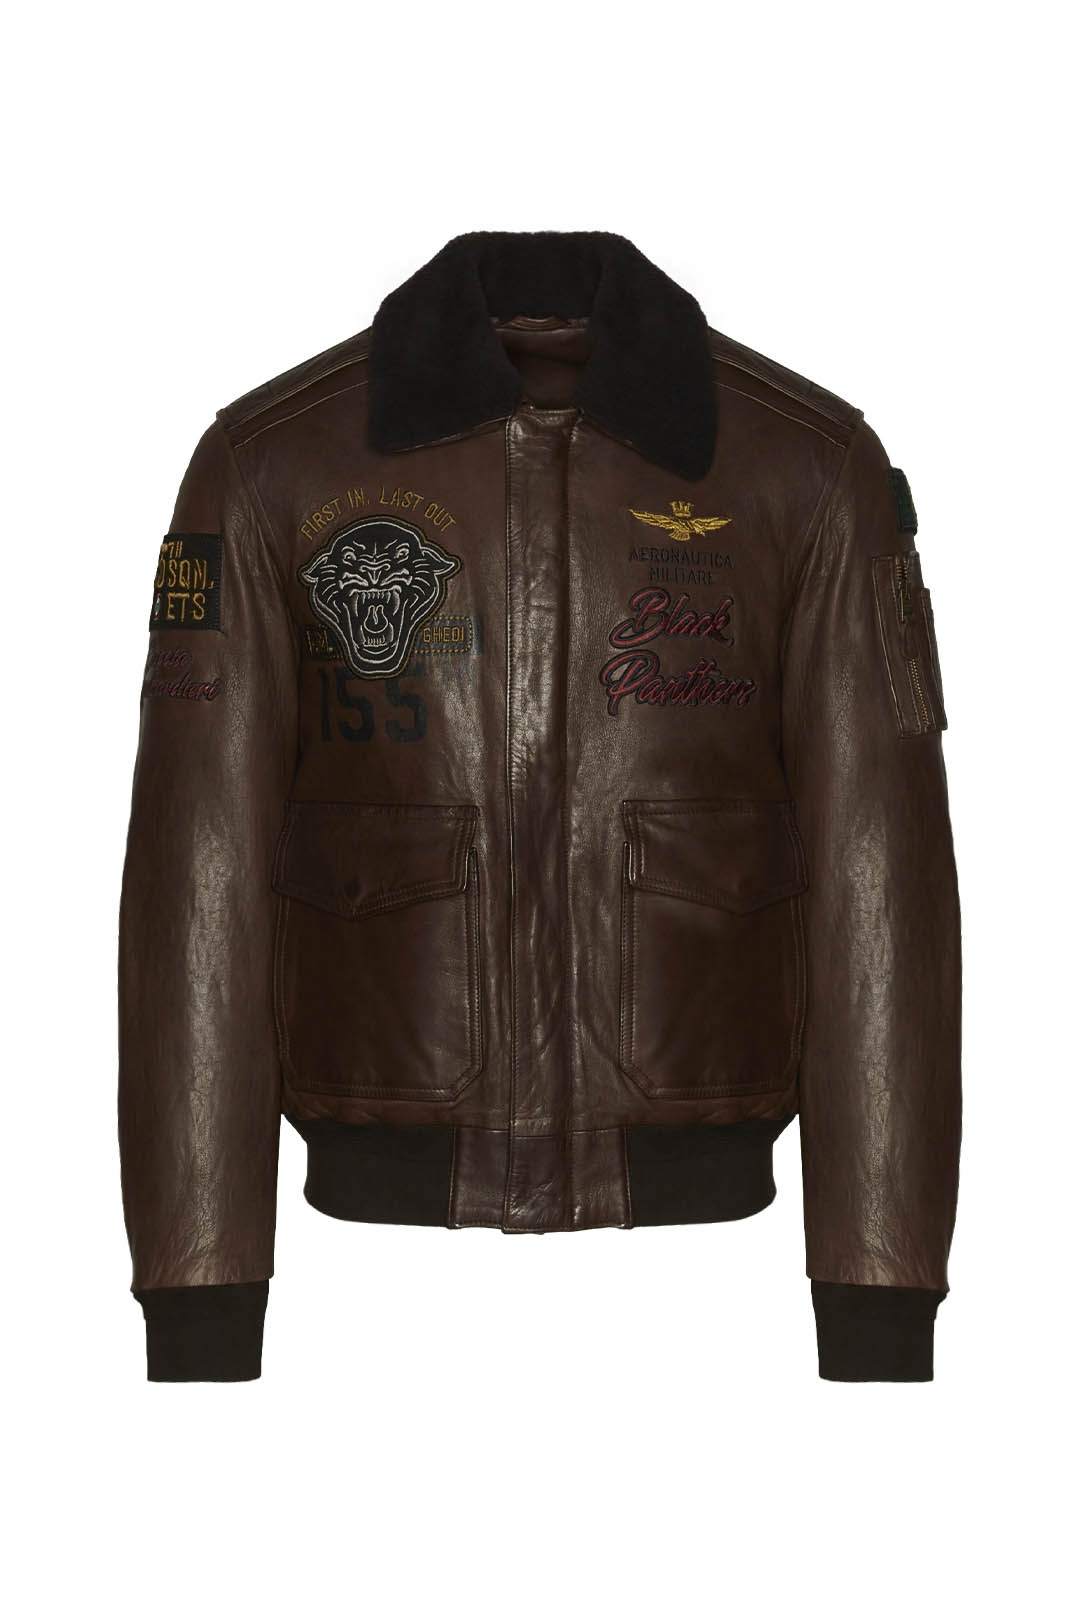 Leather jacket 155 Group Black Panthers  1